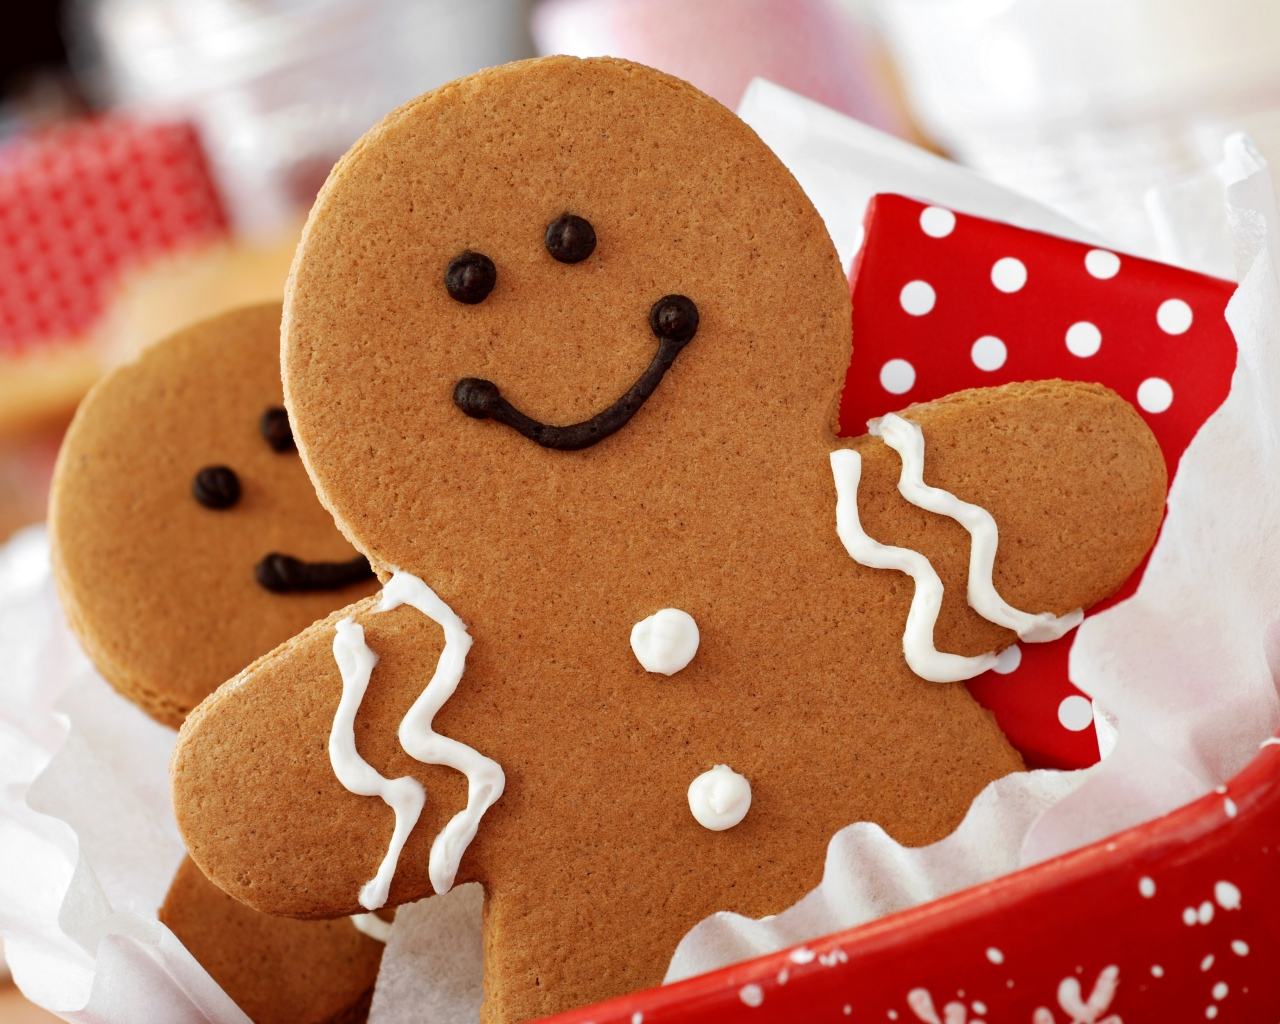 christmas_new_year_holiday_sweets_84982_1280x1024